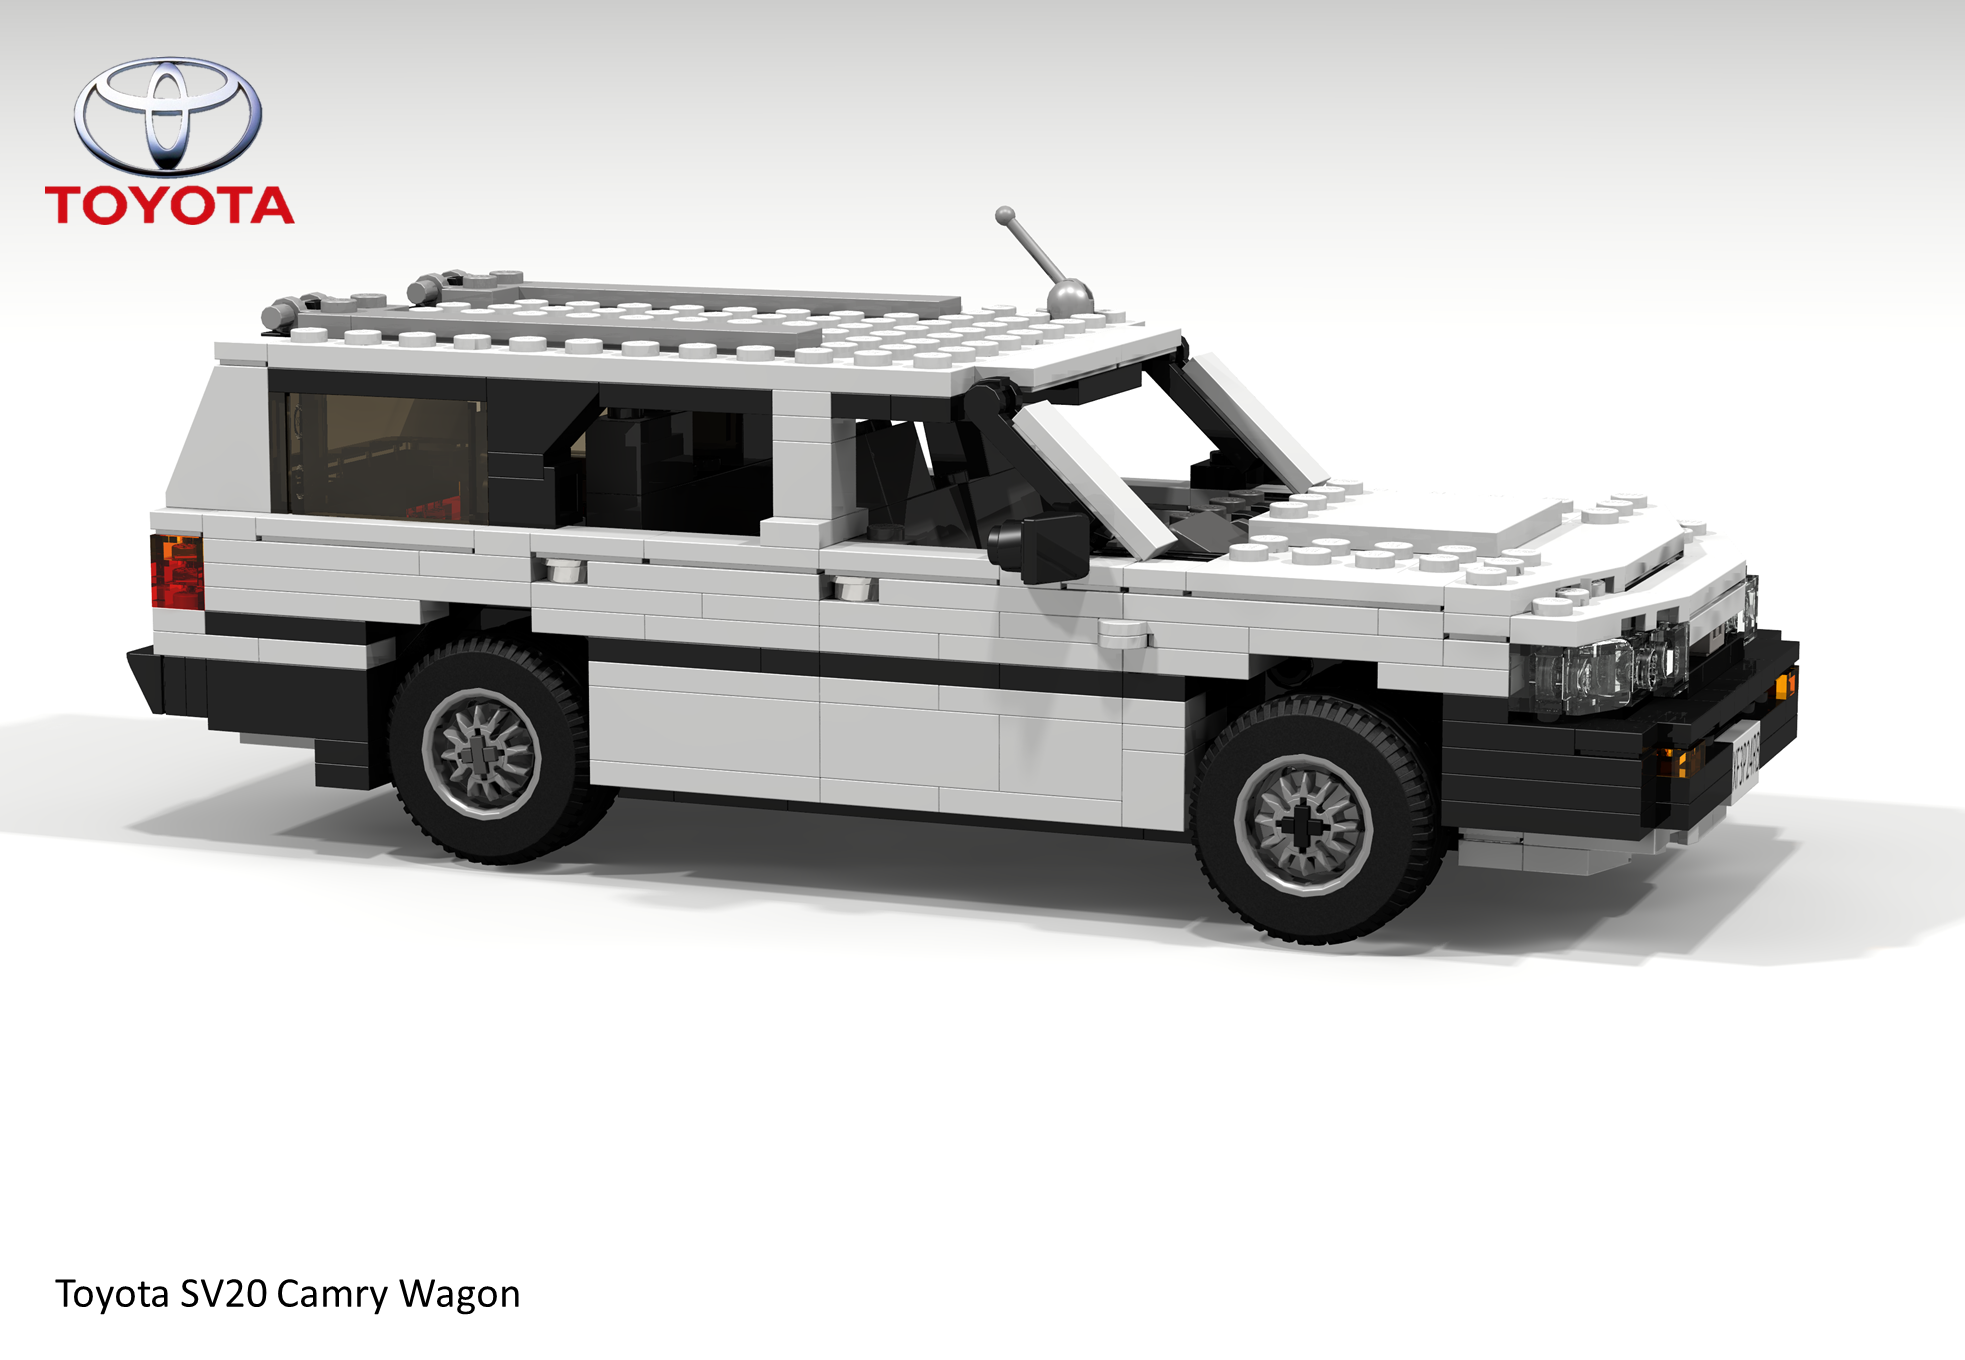 toyota_v20_camry_wagon_01.png